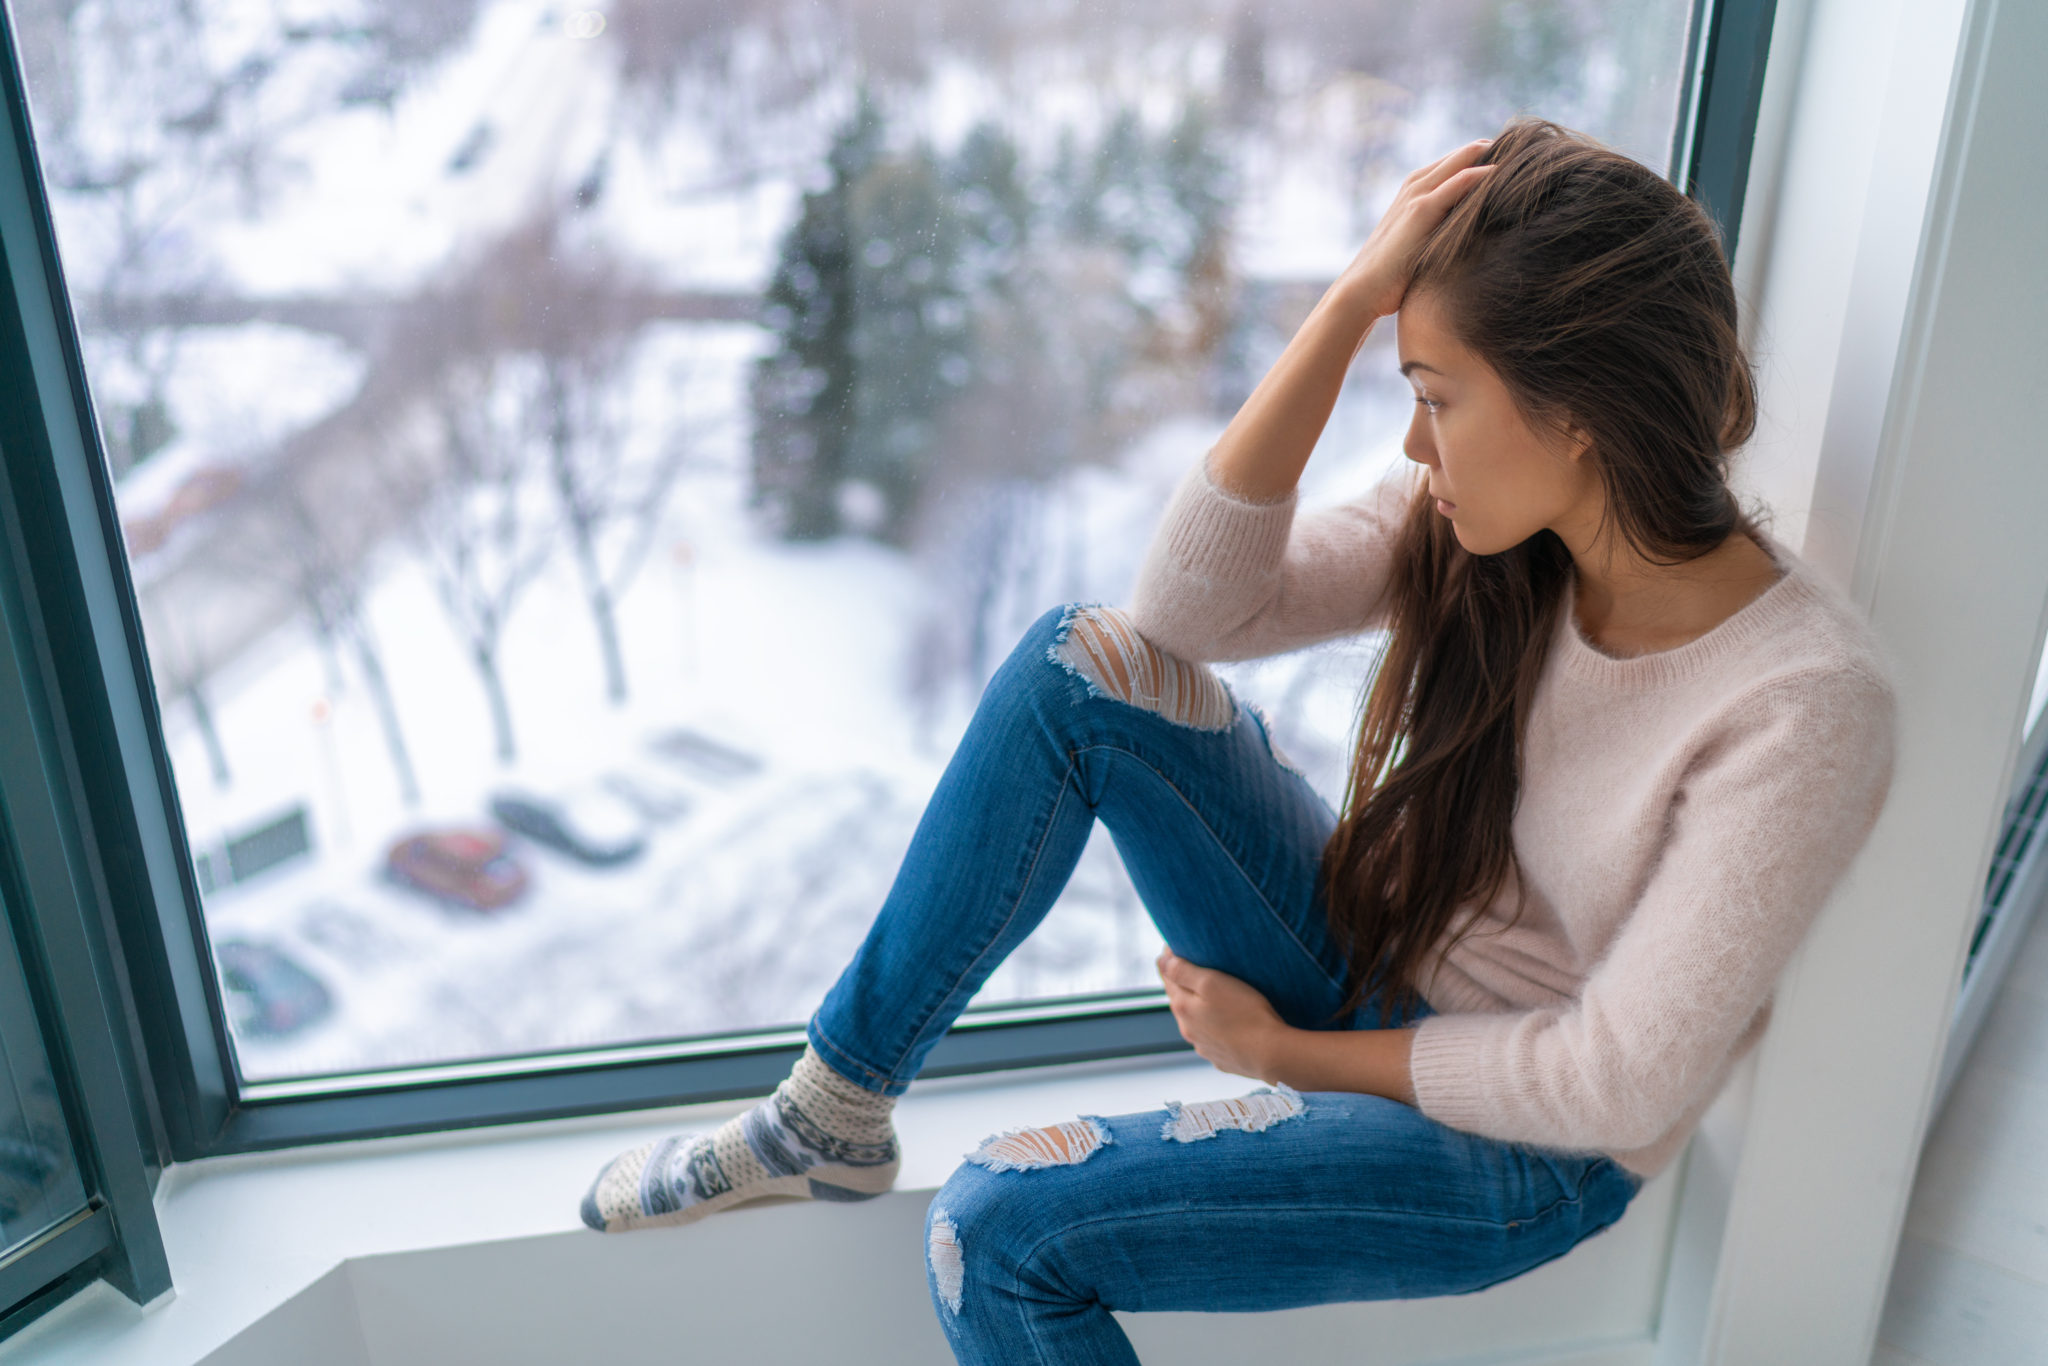 Winter Depressed Sad Girl Lonely By Home Window Looking At Cold Weather Upset Unhappy Bad Feelings Stress Anxiety Grief Emotions Asian Woman Portrait Tms Center At Southeastern Psychiatric Associates